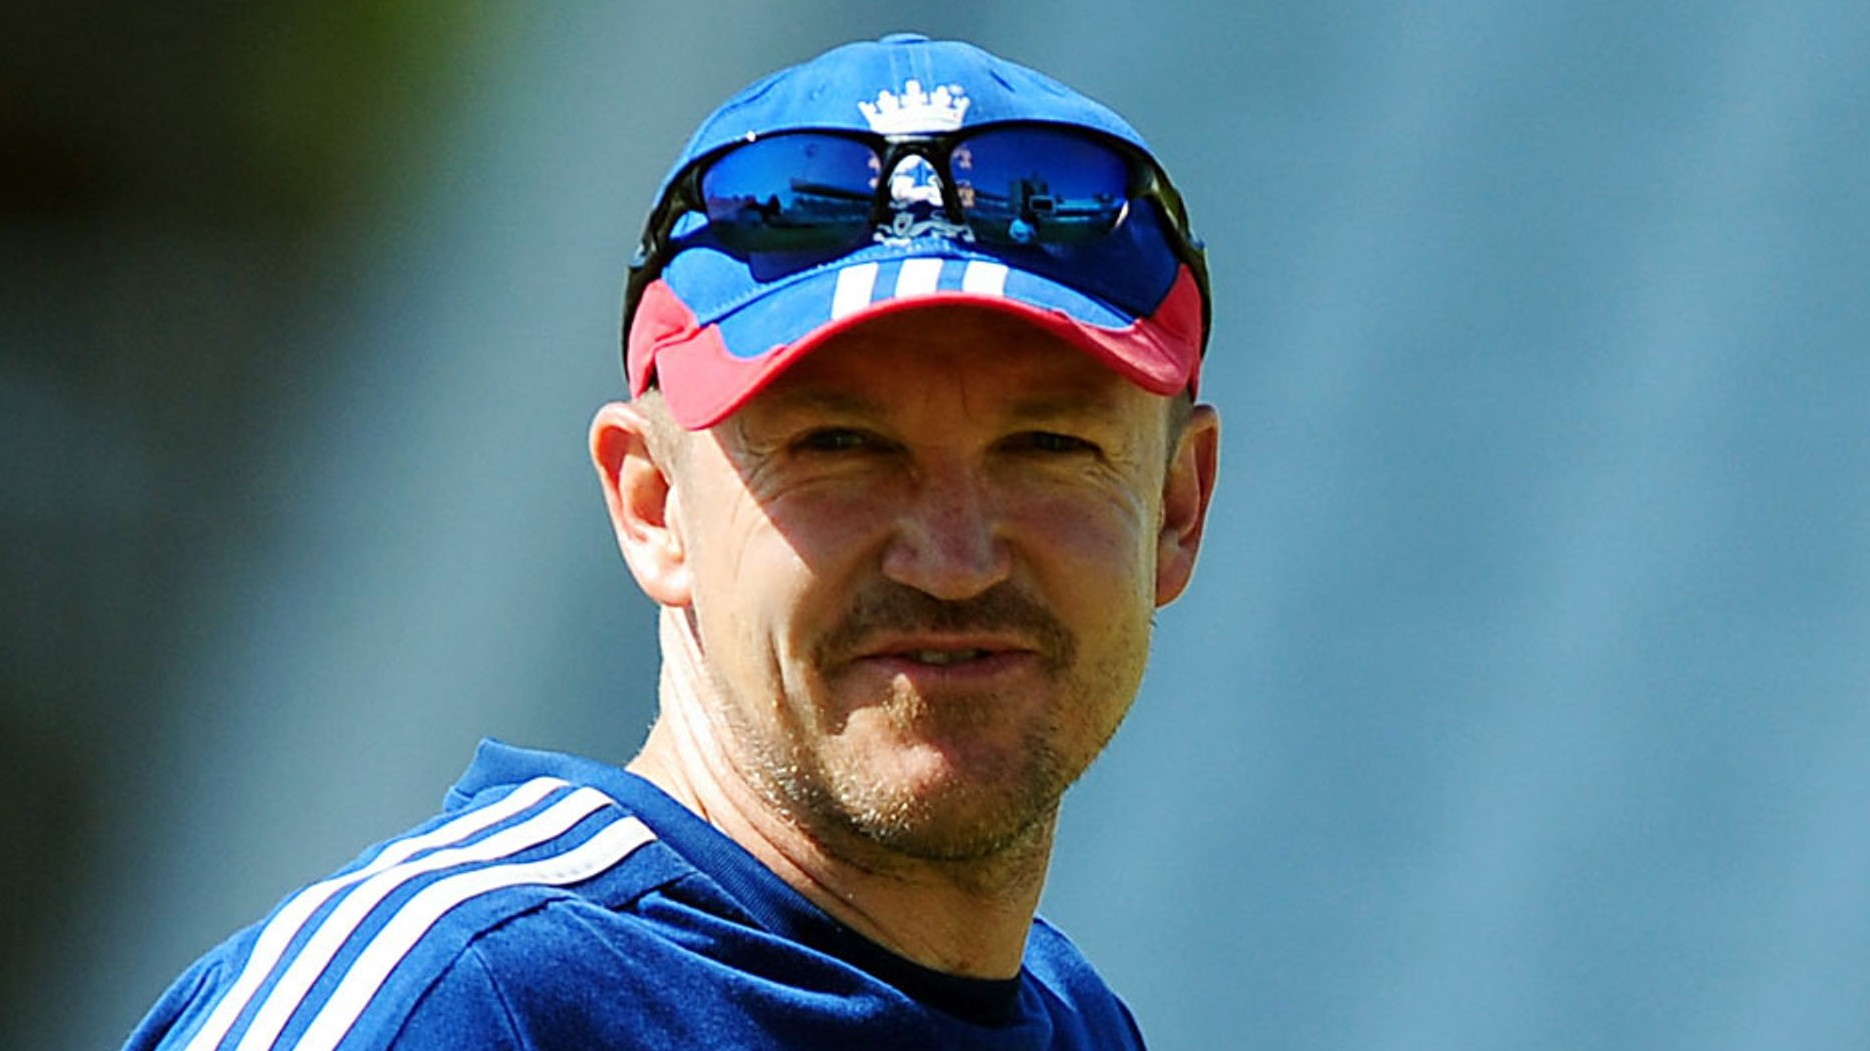 Andy Flower discusses possibility of coaching India; opines on Smith v Kohli debate